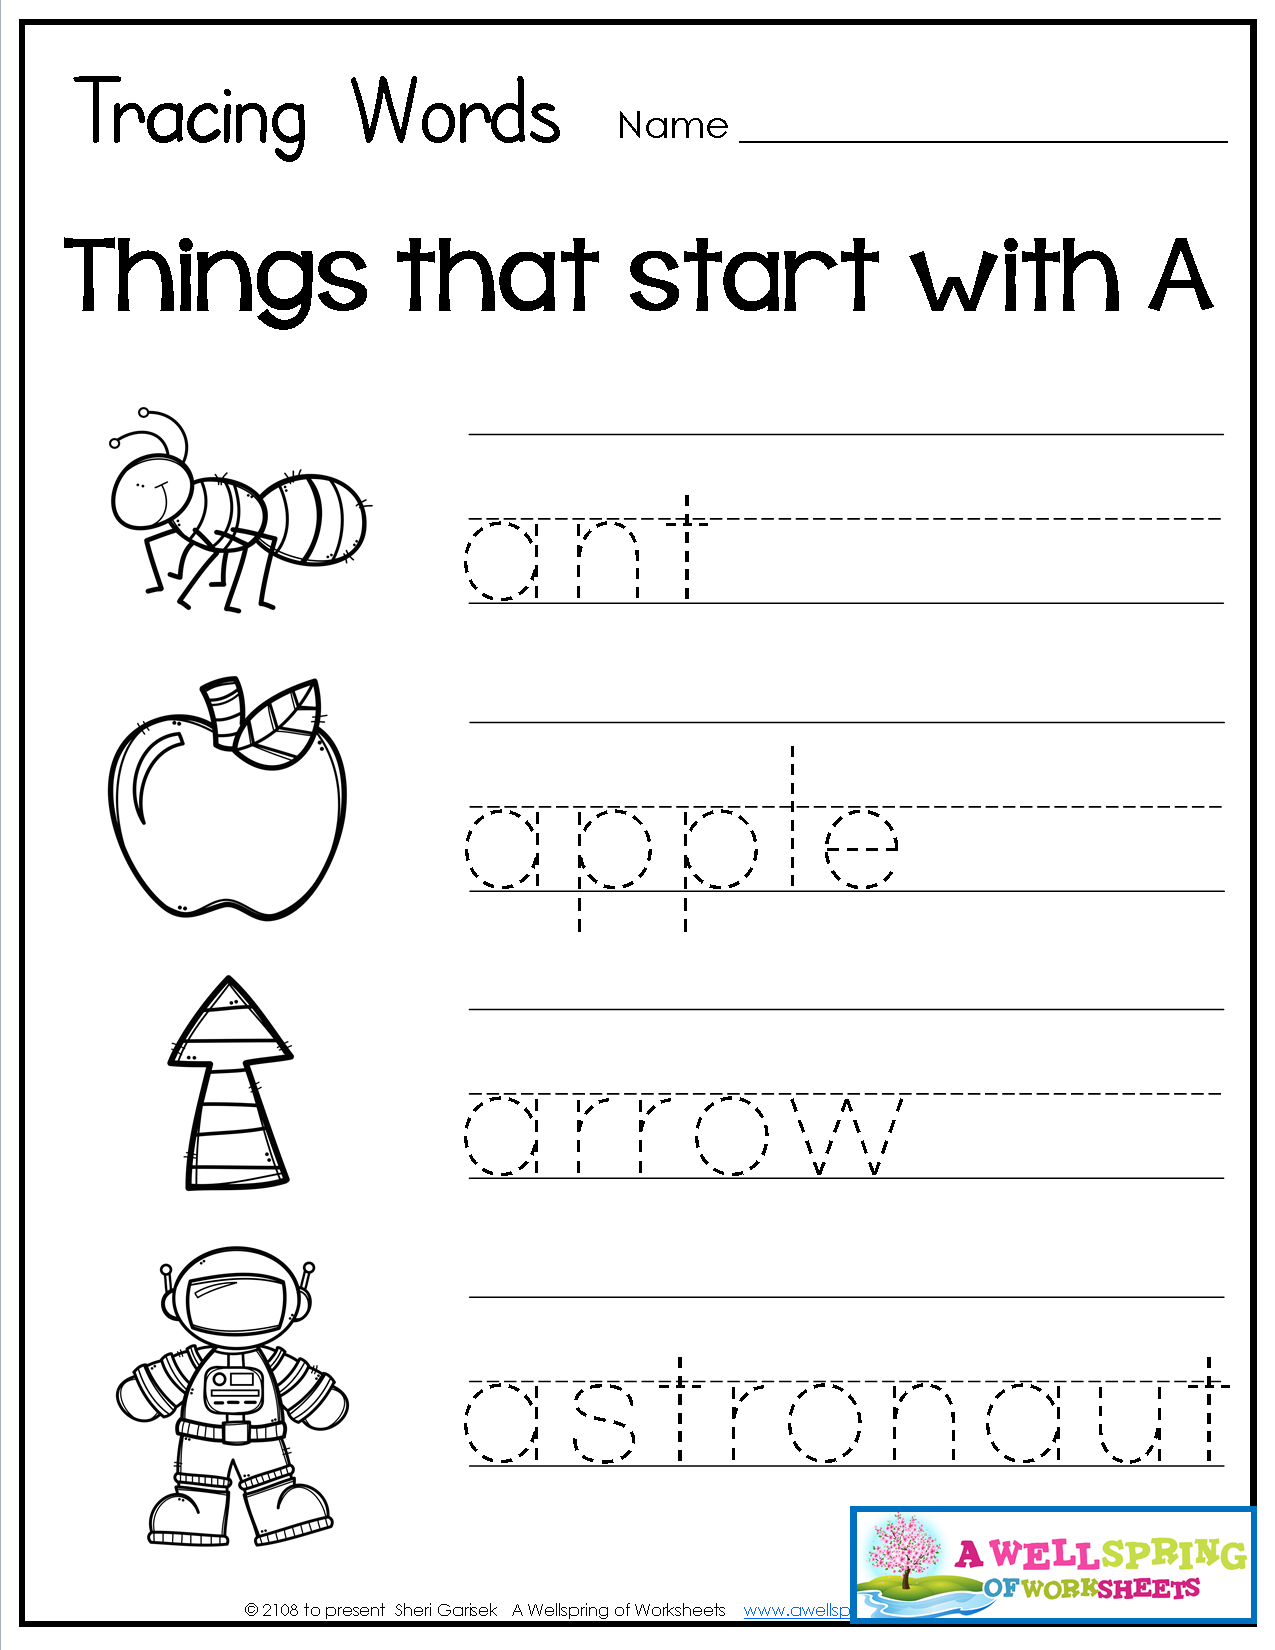 Tracing Words - Things That Start With A-Z Worksheets These throughout Alphabet Name Tracing Worksheets